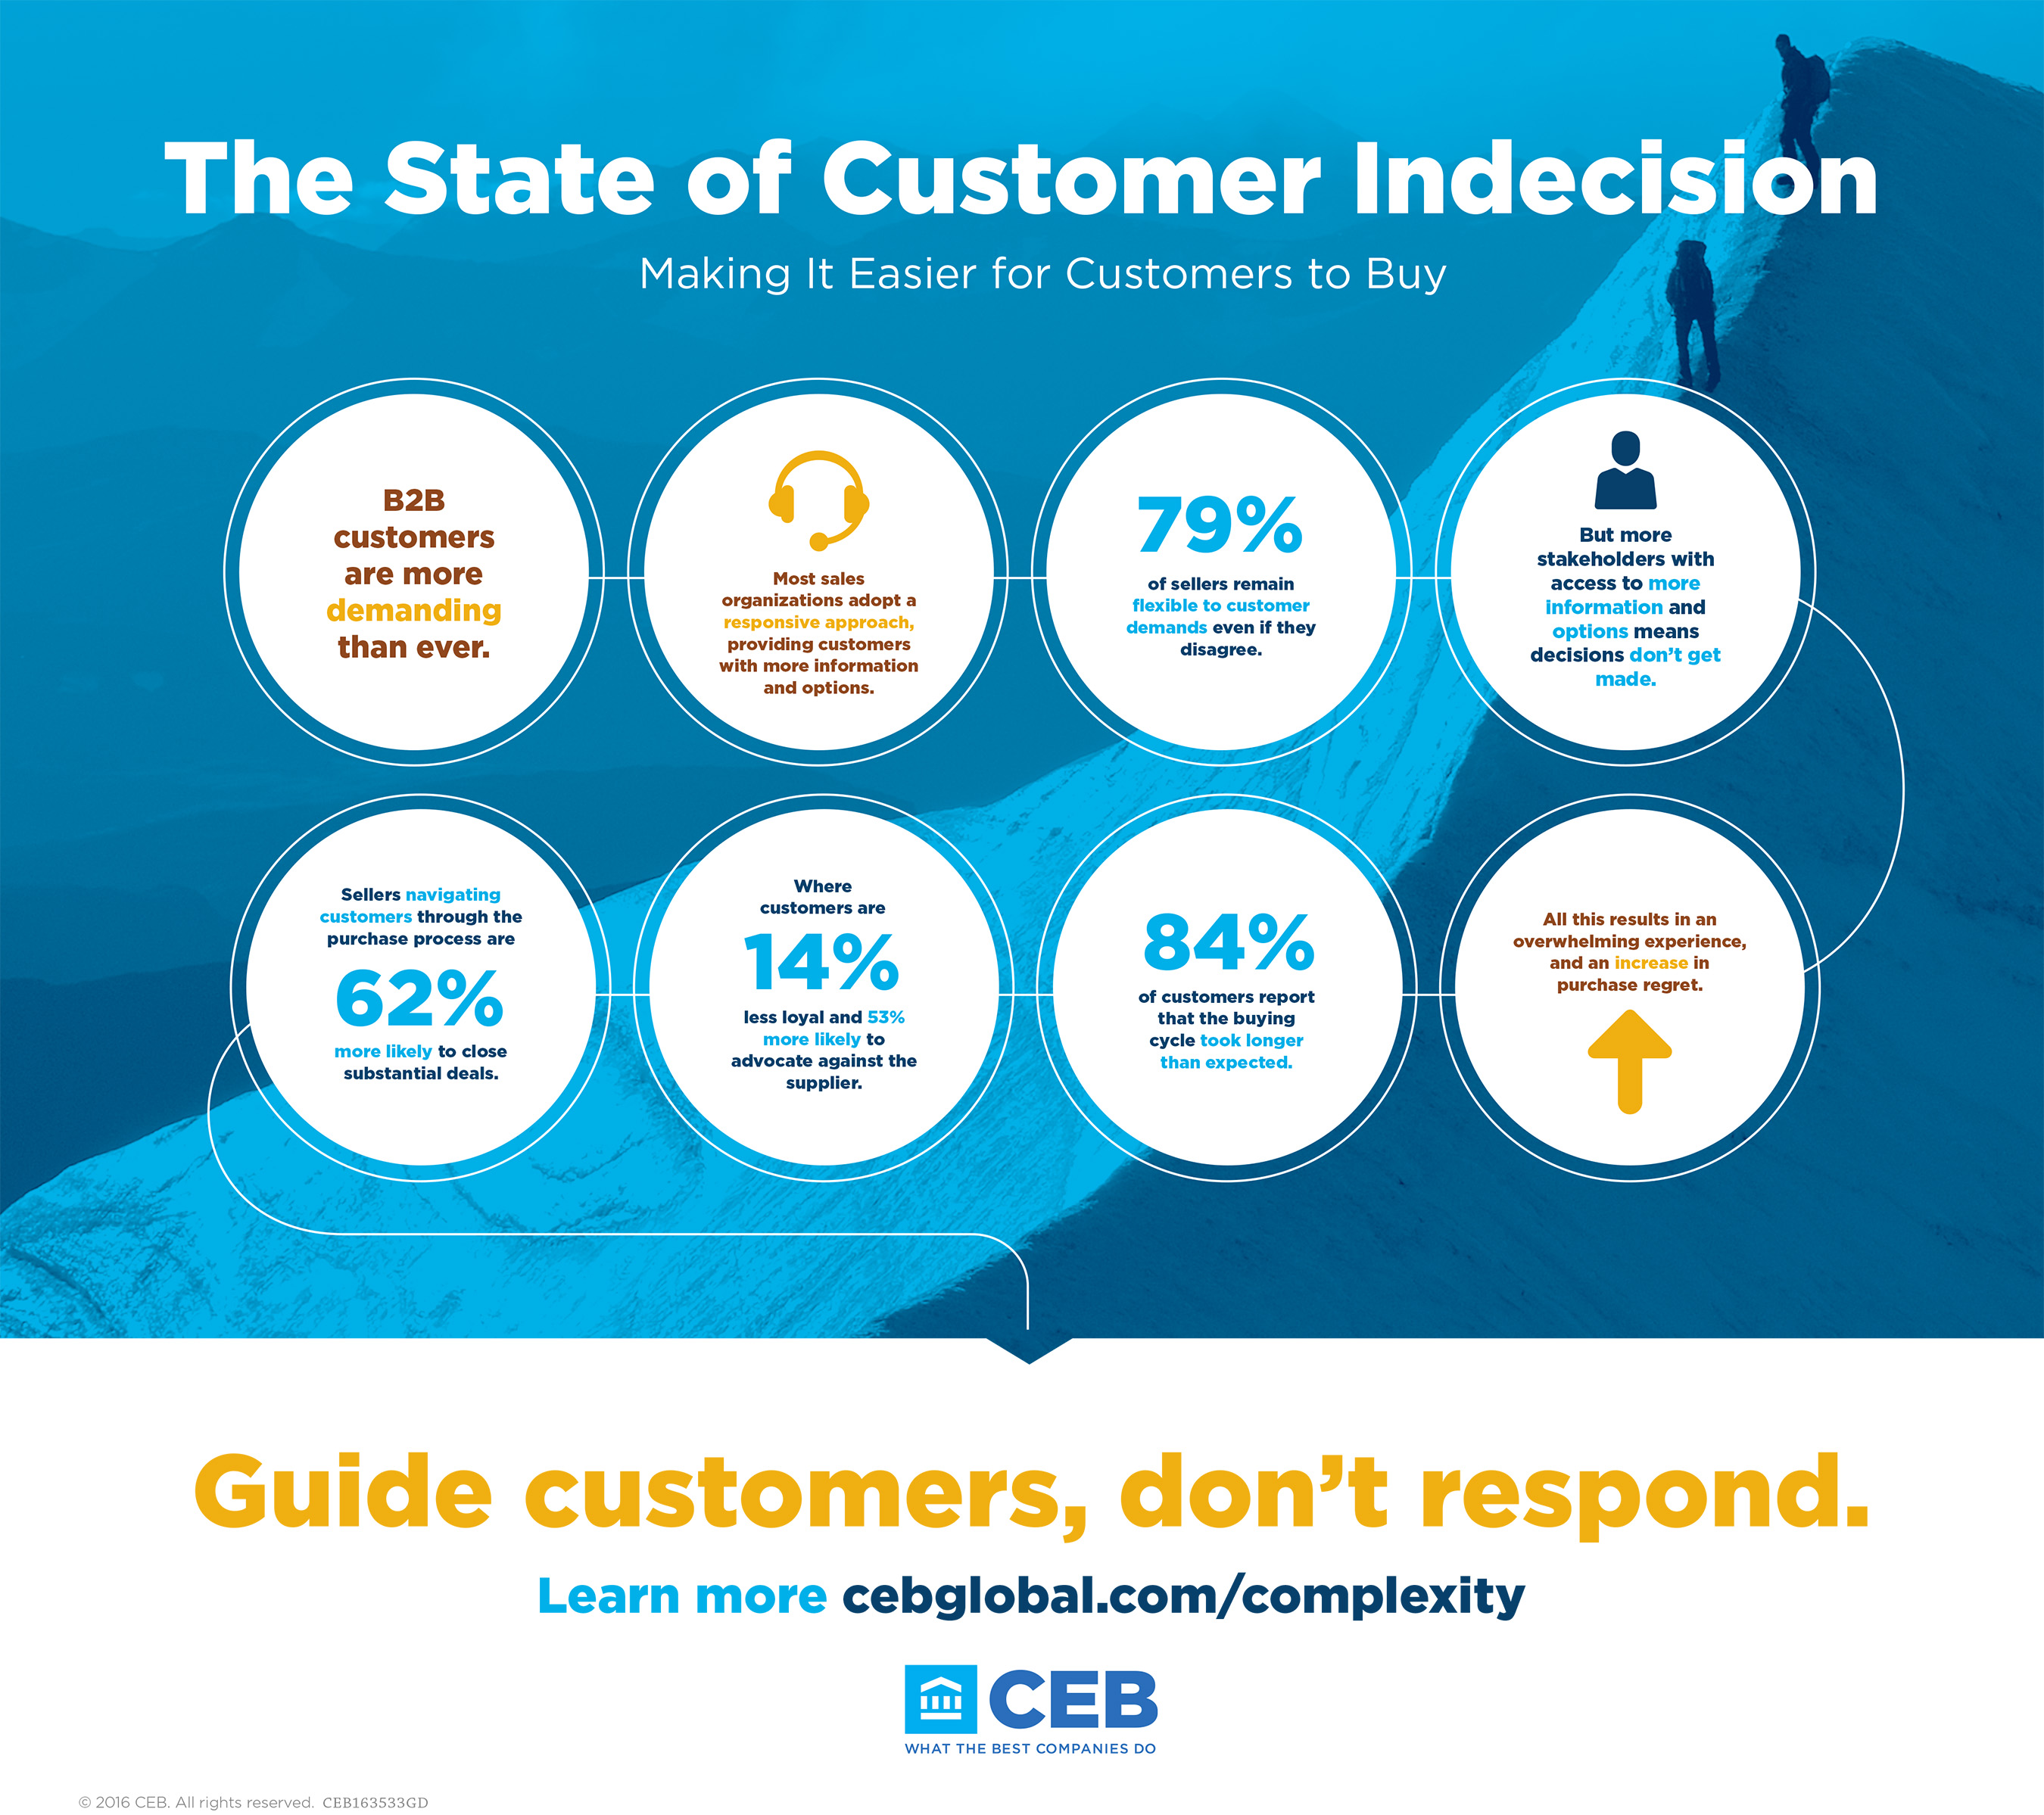 The State of Customer Indecision – Making It Easier for Customers to Buy